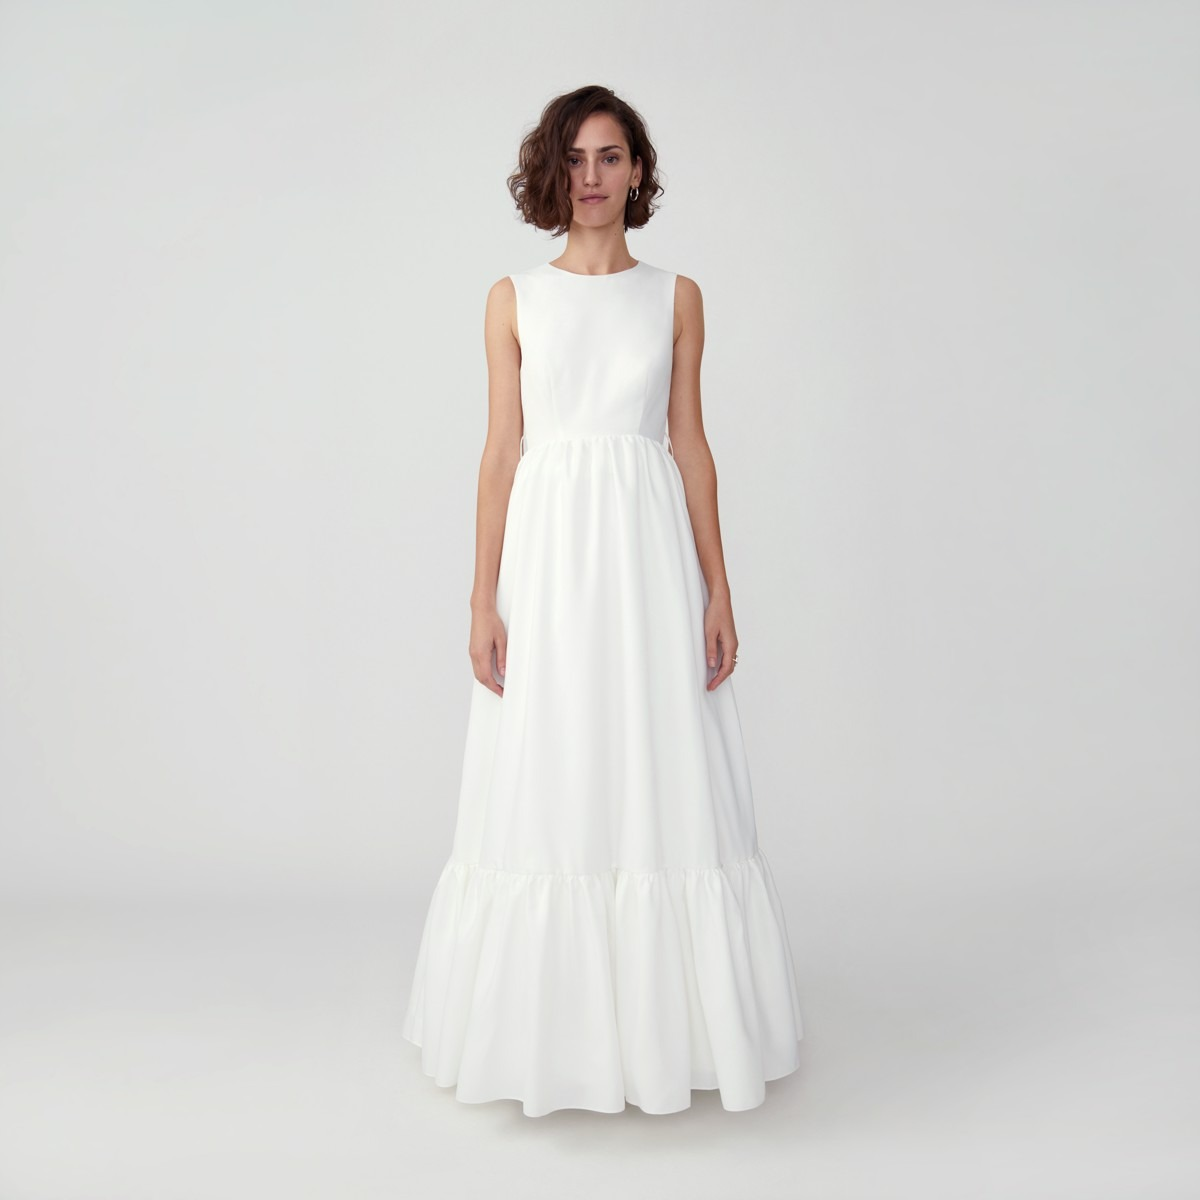 contemporary wedding dresses online from Fame and Partners